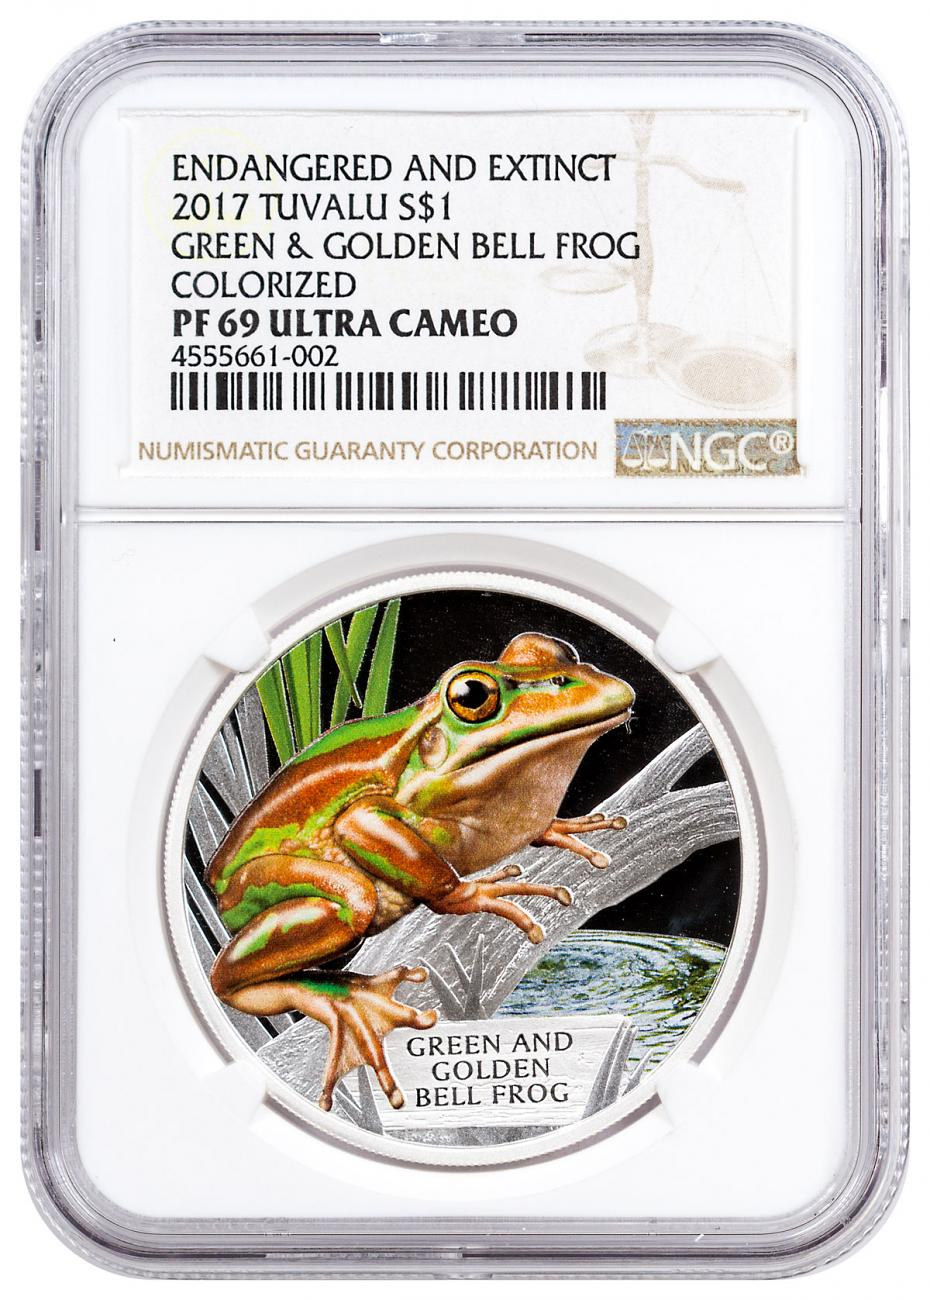 2017 Tuvalu Endangered and Extinct - Green and Golden Bell Frog 1 oz Silver Proof $1 Coin NGC PF69 UC